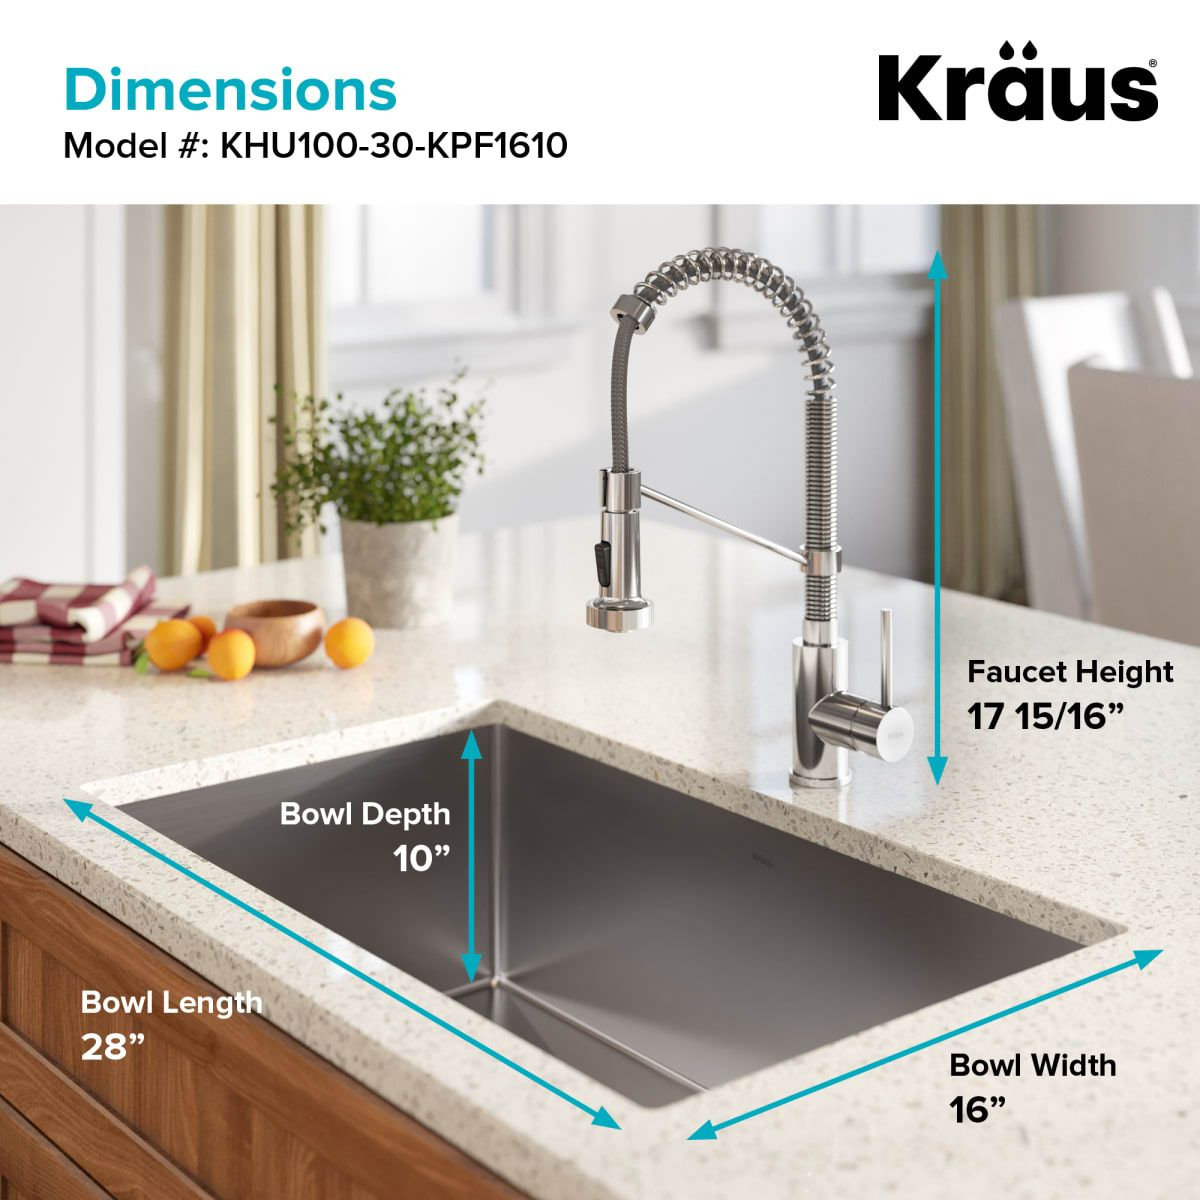 Kraus Khu100 30 1610 53ss Stainless Steel Standart Pro 30 Undermount Single Basin Stainless Steel Kitchen Sink With Deck Mounted 1 8 Gpm Pre Rinse Kitchen Fa Undermount Kitchen Sinks Single Bowl Kitchen Sink Double Bowl